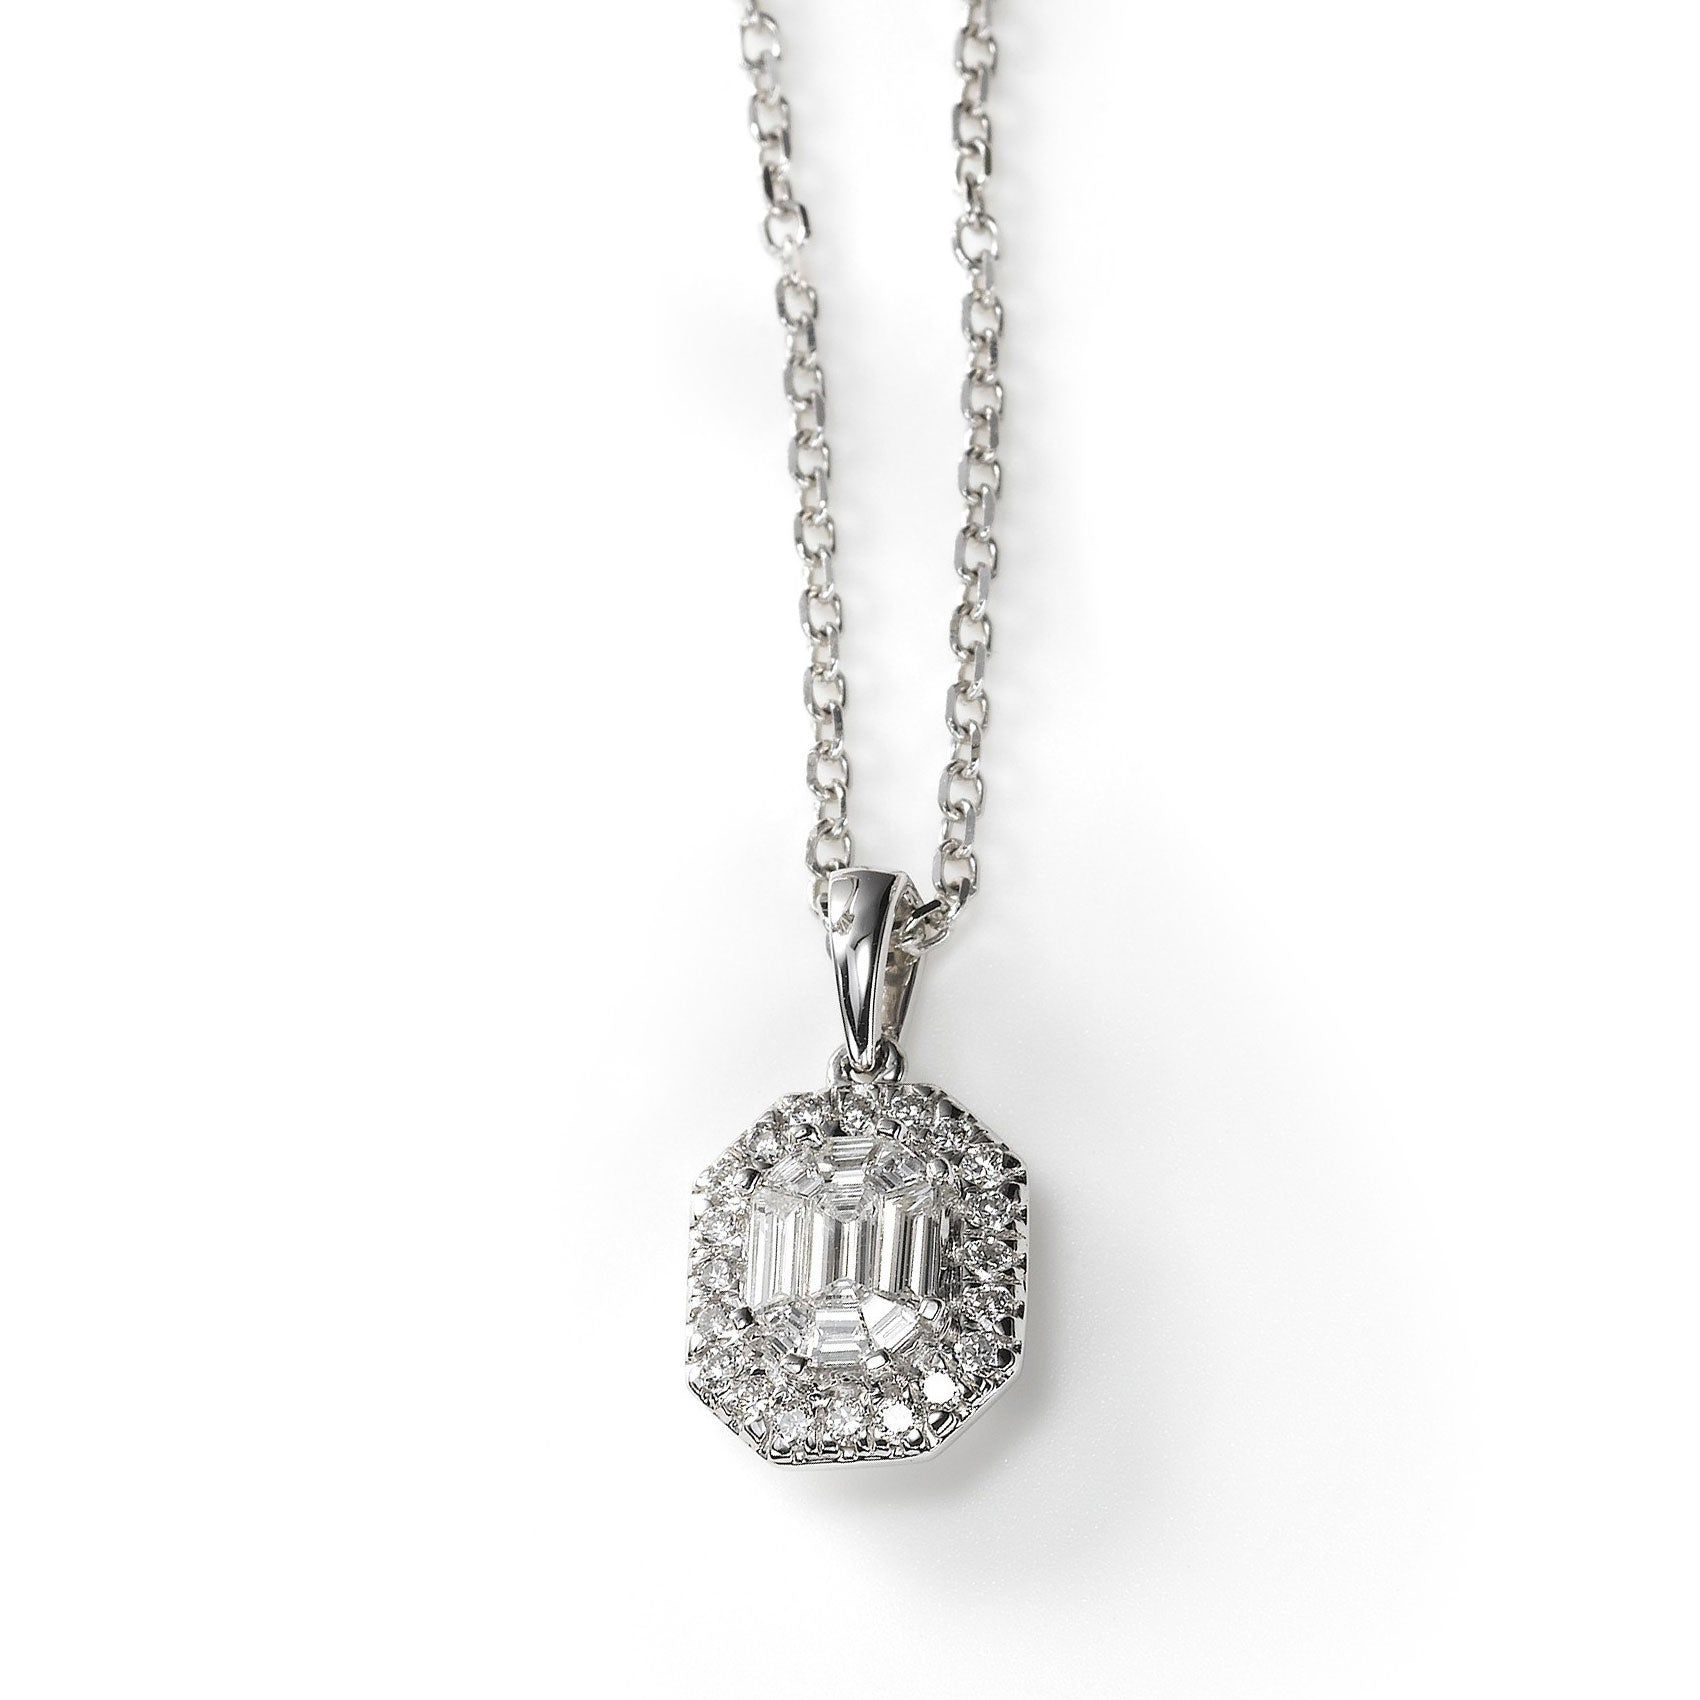 Emerald Cut Diamond Pendant with Halo, 14K White Gold